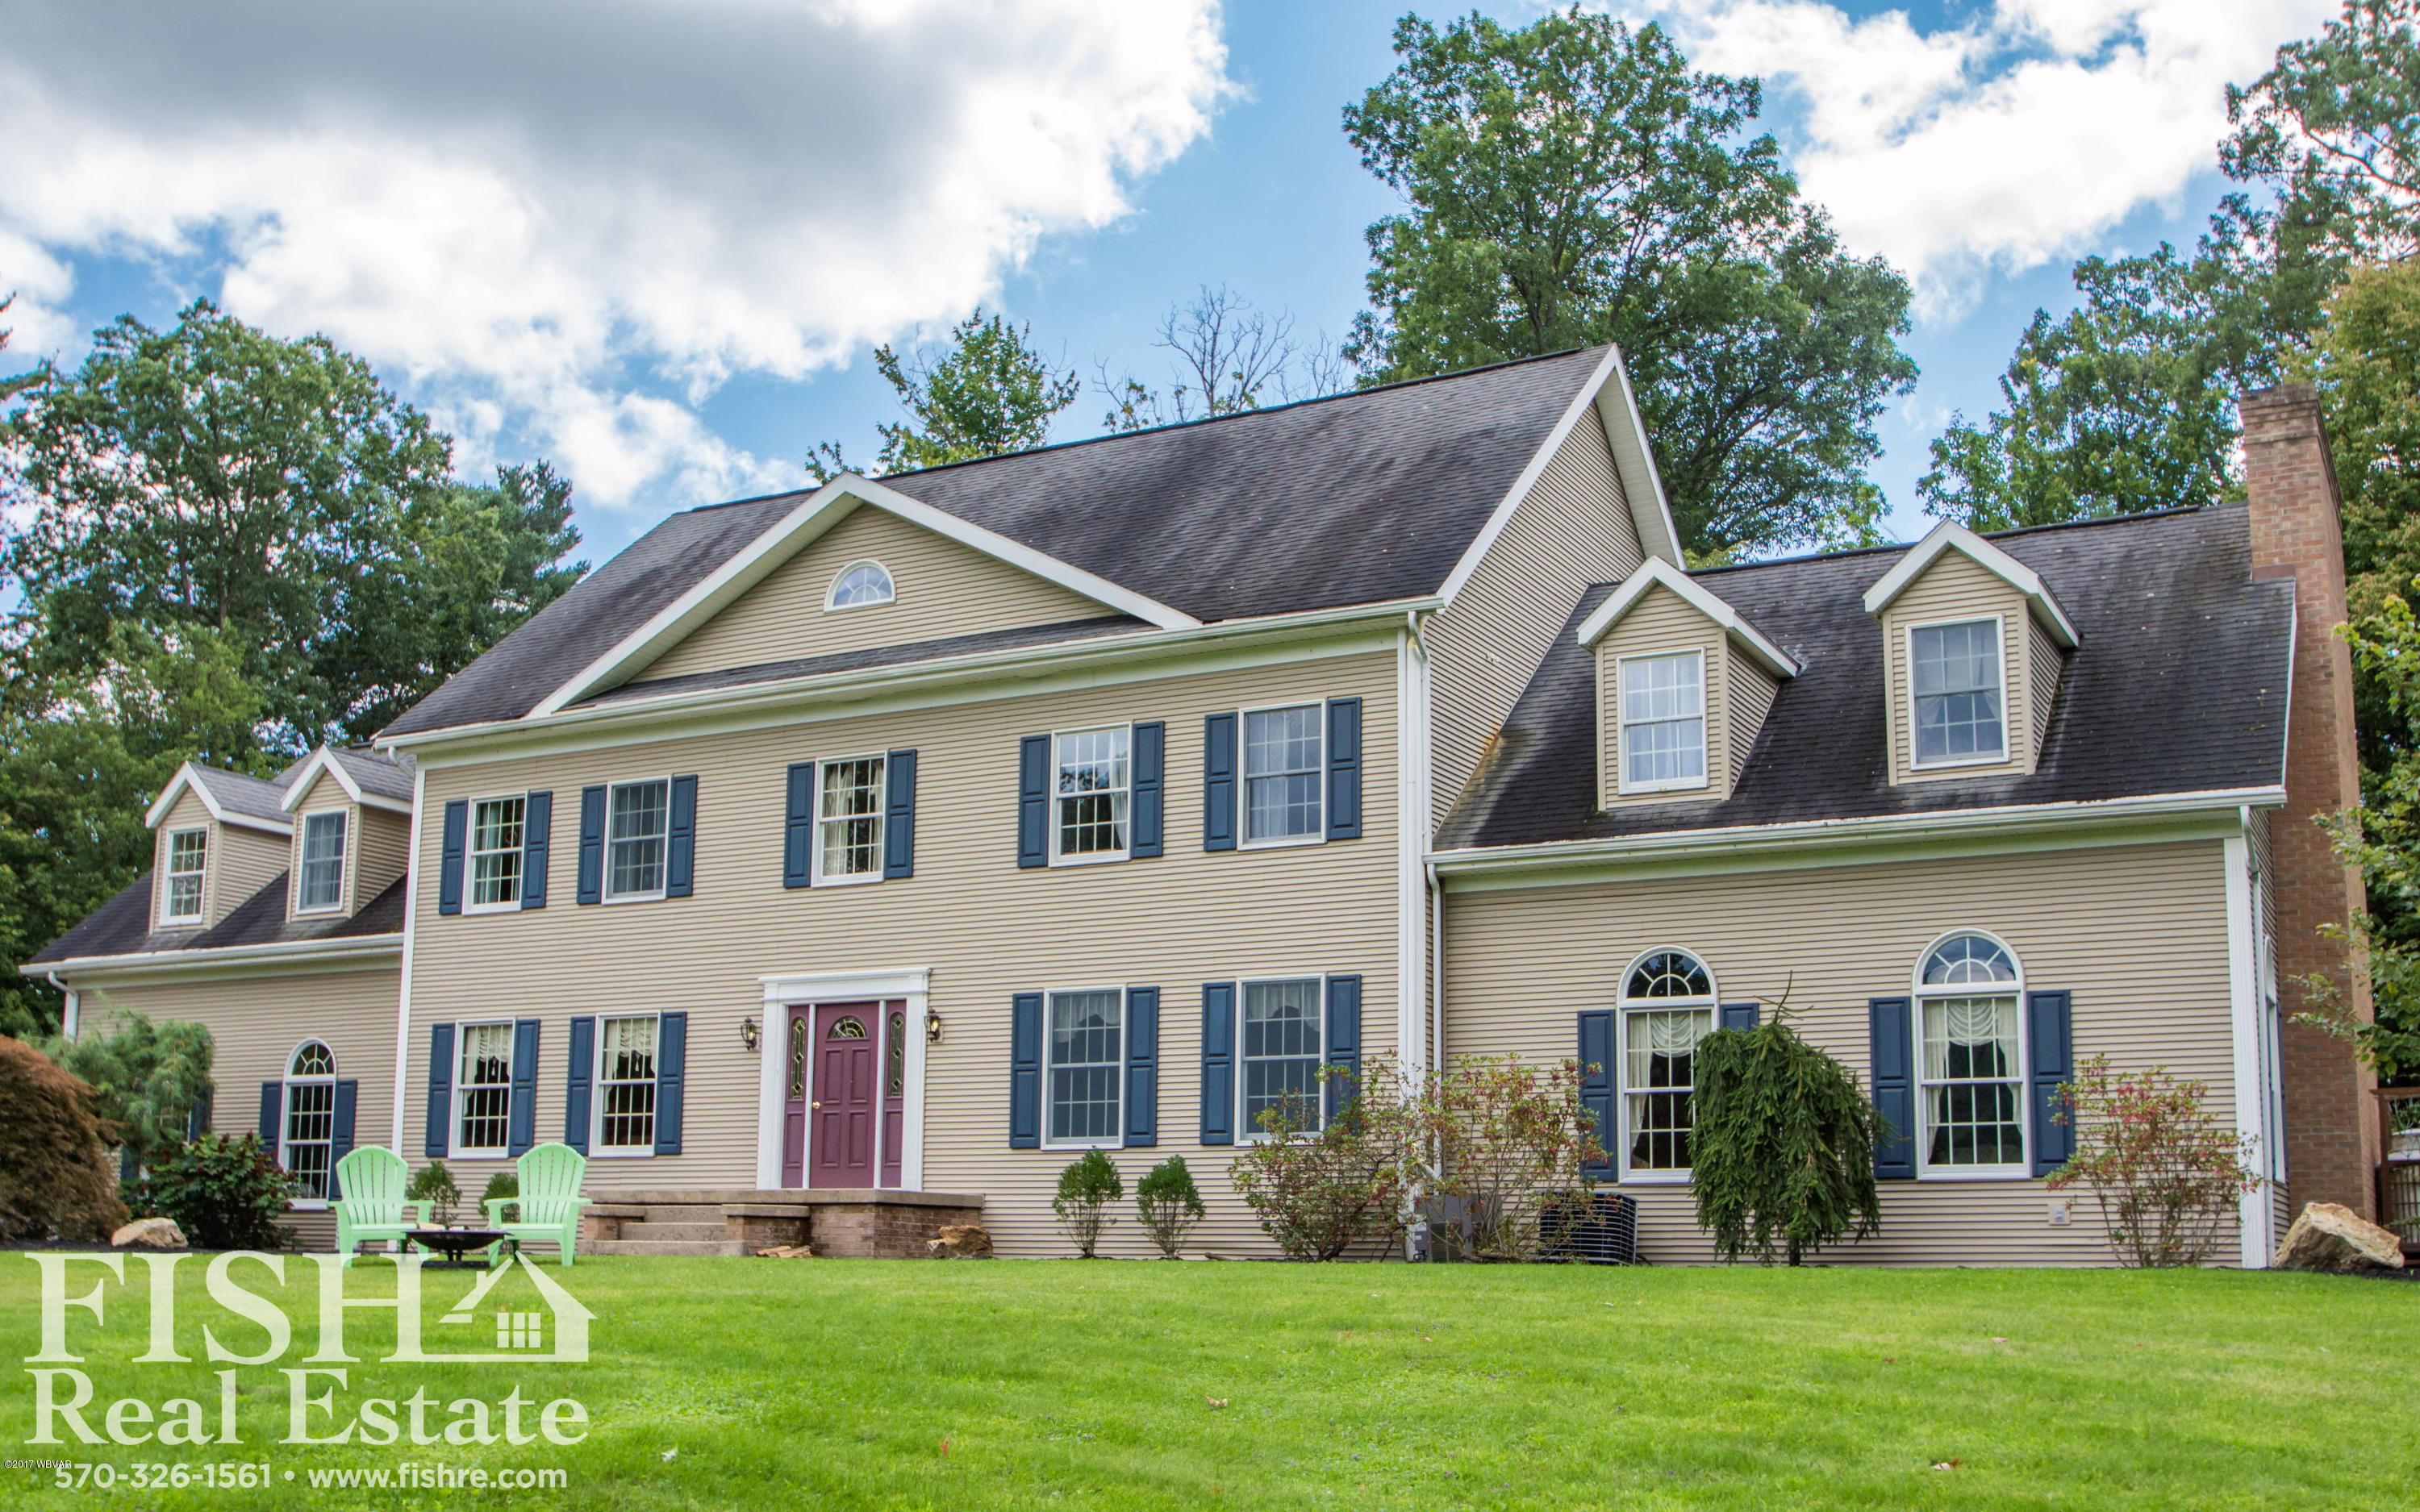 1285 ROSE VALLEY ROAD,Cogan Station,PA 17728,5 Bedrooms Bedrooms,3 BathroomsBathrooms,Residential,ROSE VALLEY,WB-86431